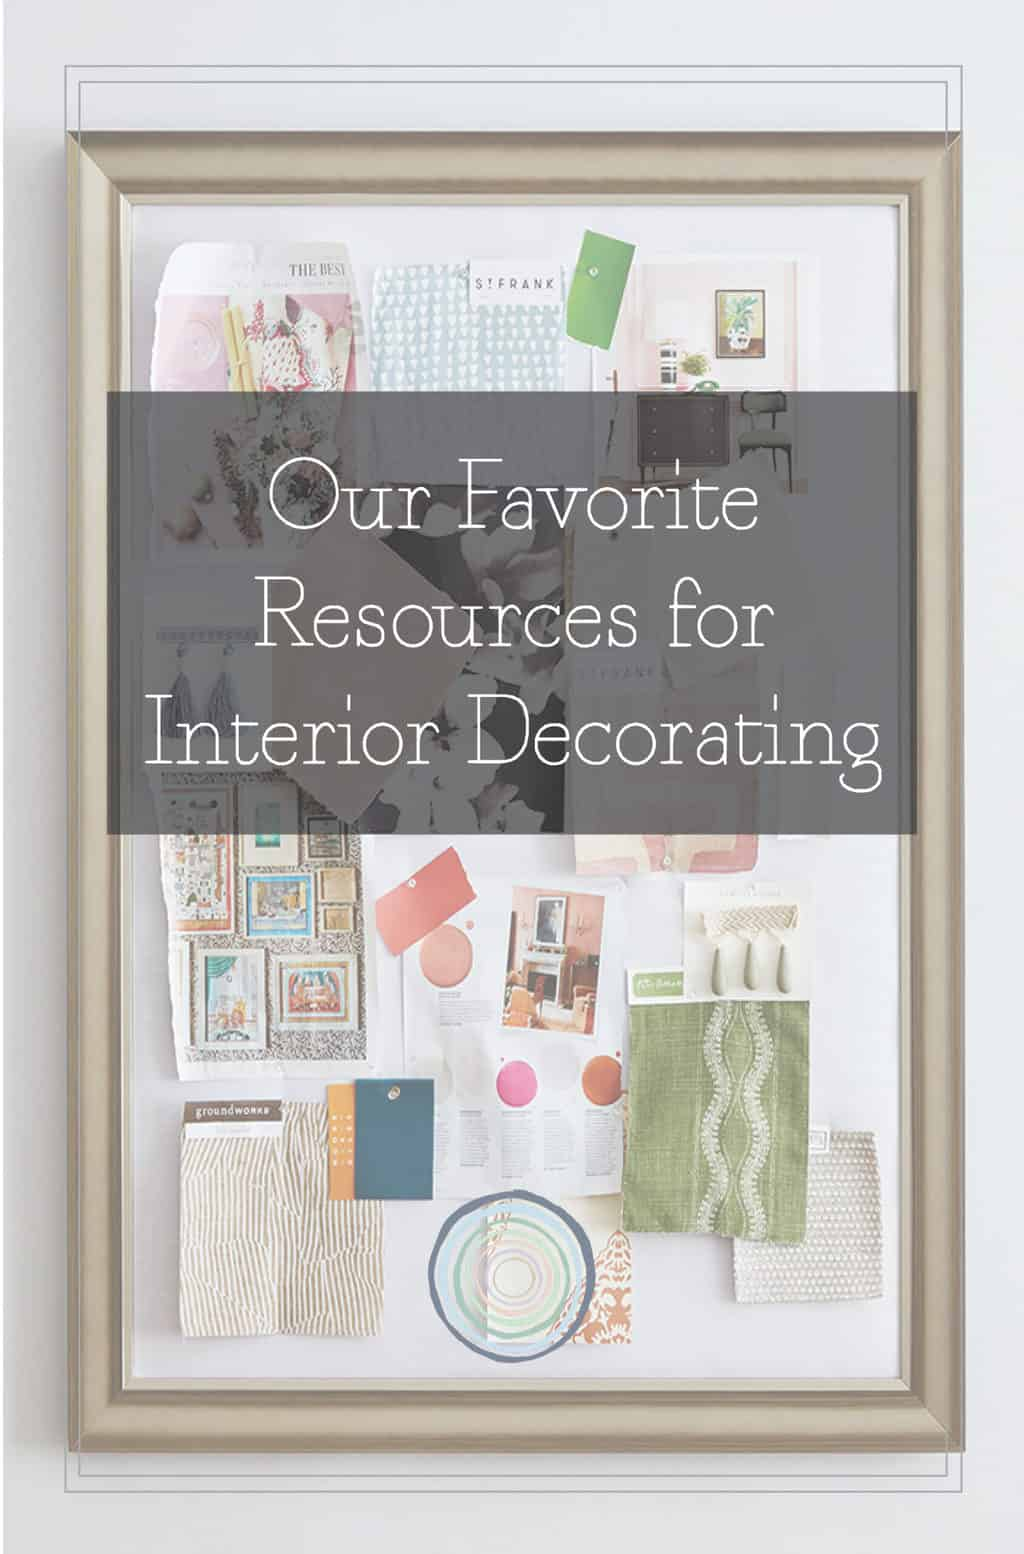 Our Favorite Resources for Interior Decorating